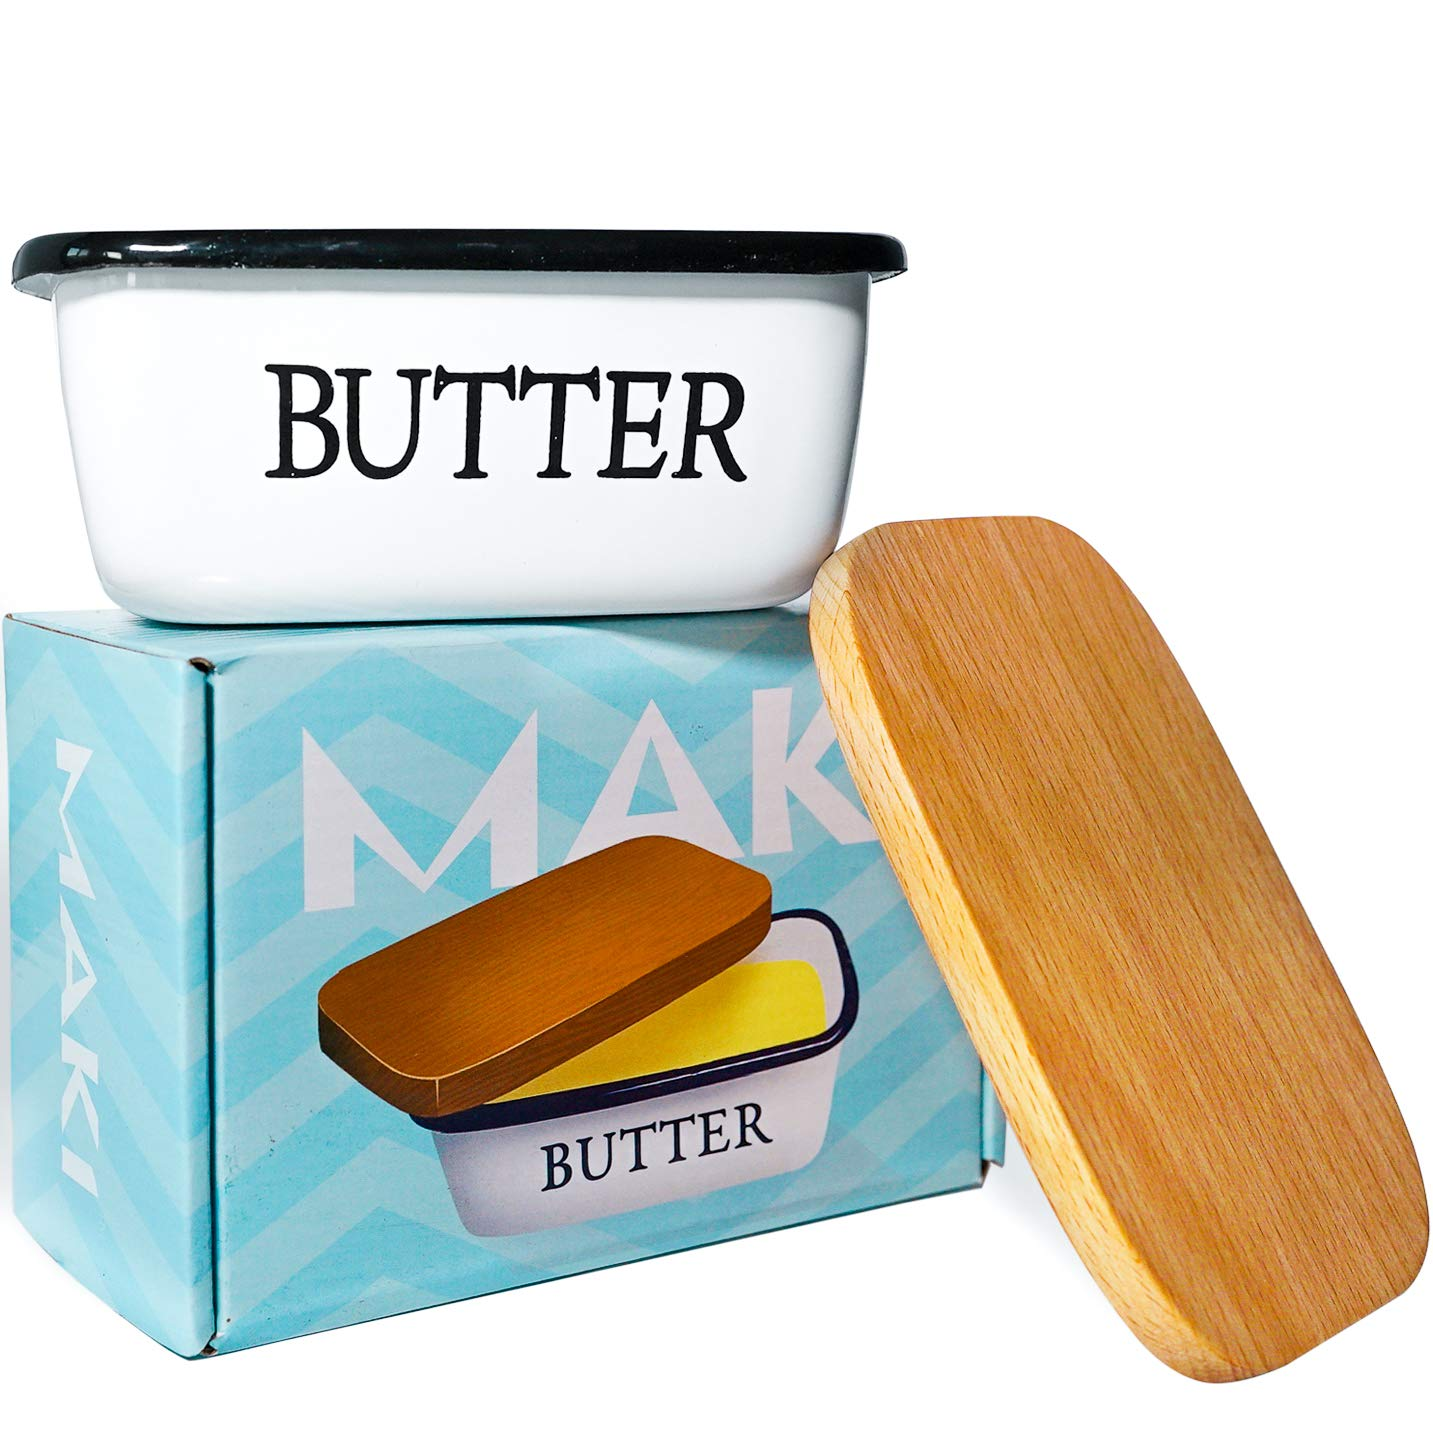 Butter Dish - White Enamel with Beechwood Lid - Fits Western, Eastern, and European Butter Sticks, 6'' x 4'' x 2.5''''Butter'' Boat (Enamel & Beechwood, 6'' x 4'' x 2.5'')